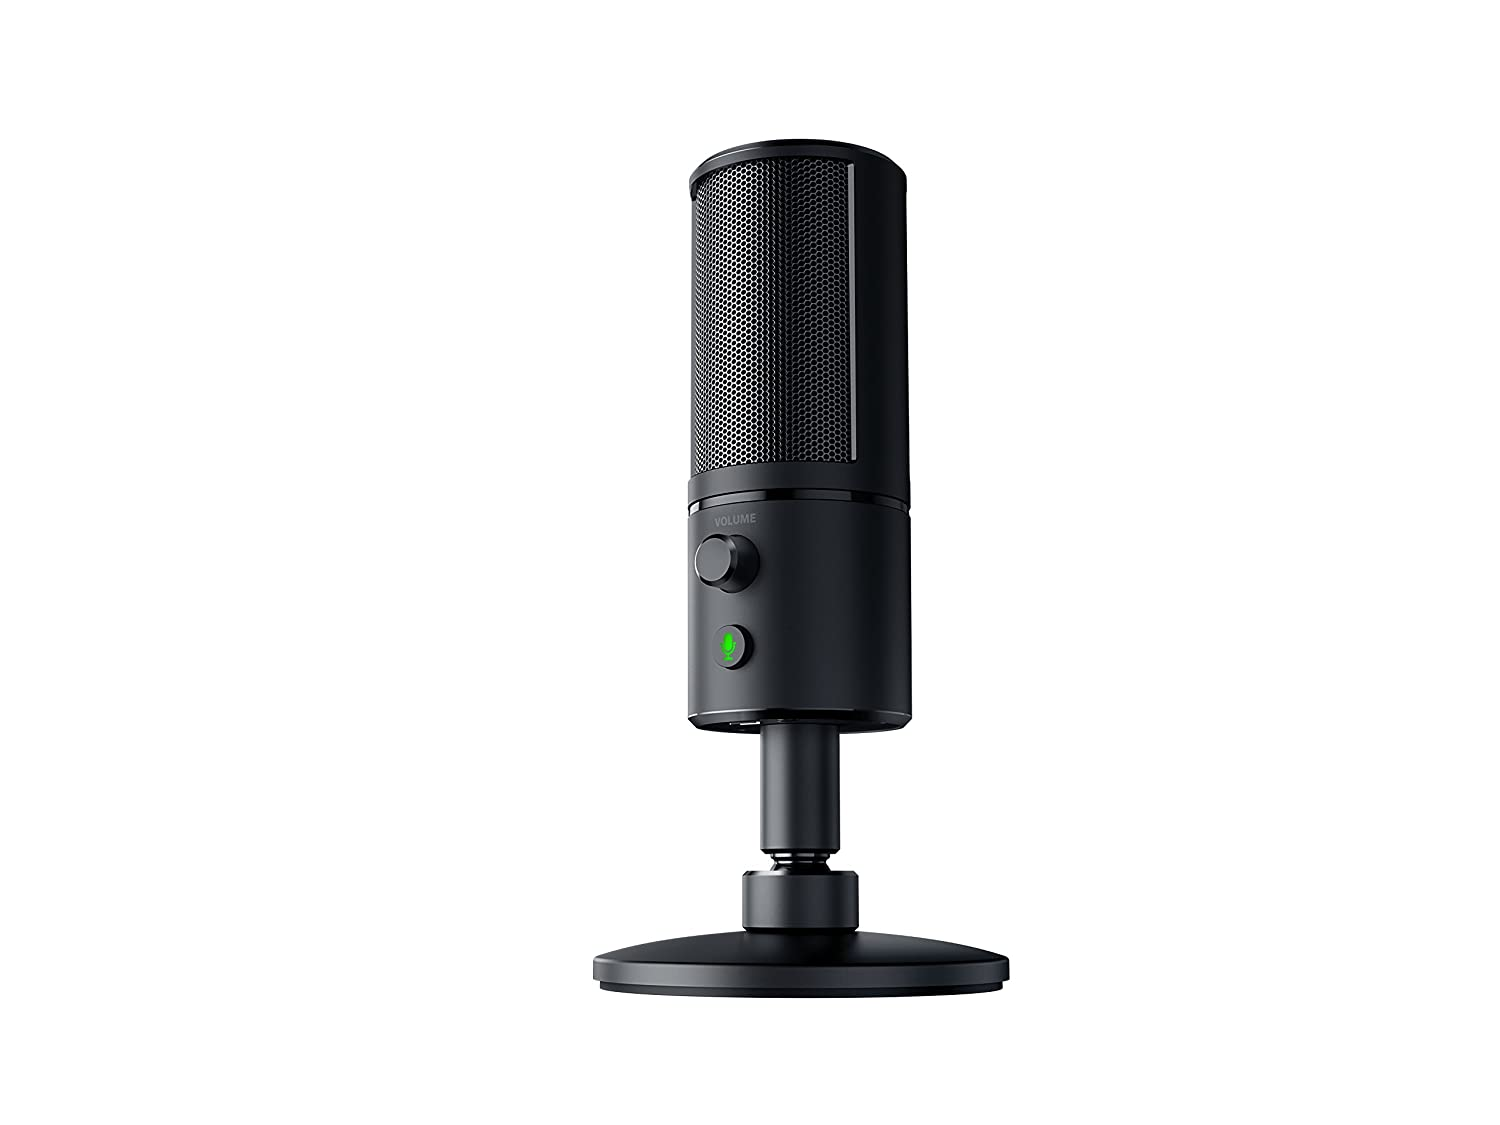 RAZER SEIREN ELITE: Single Dynamic Capsule - Built-In High-Pass Filter - Digital/Analog Limiter - Professional Grade Streaming Microphone Razer Inc. RZ19-02280100-R3U1